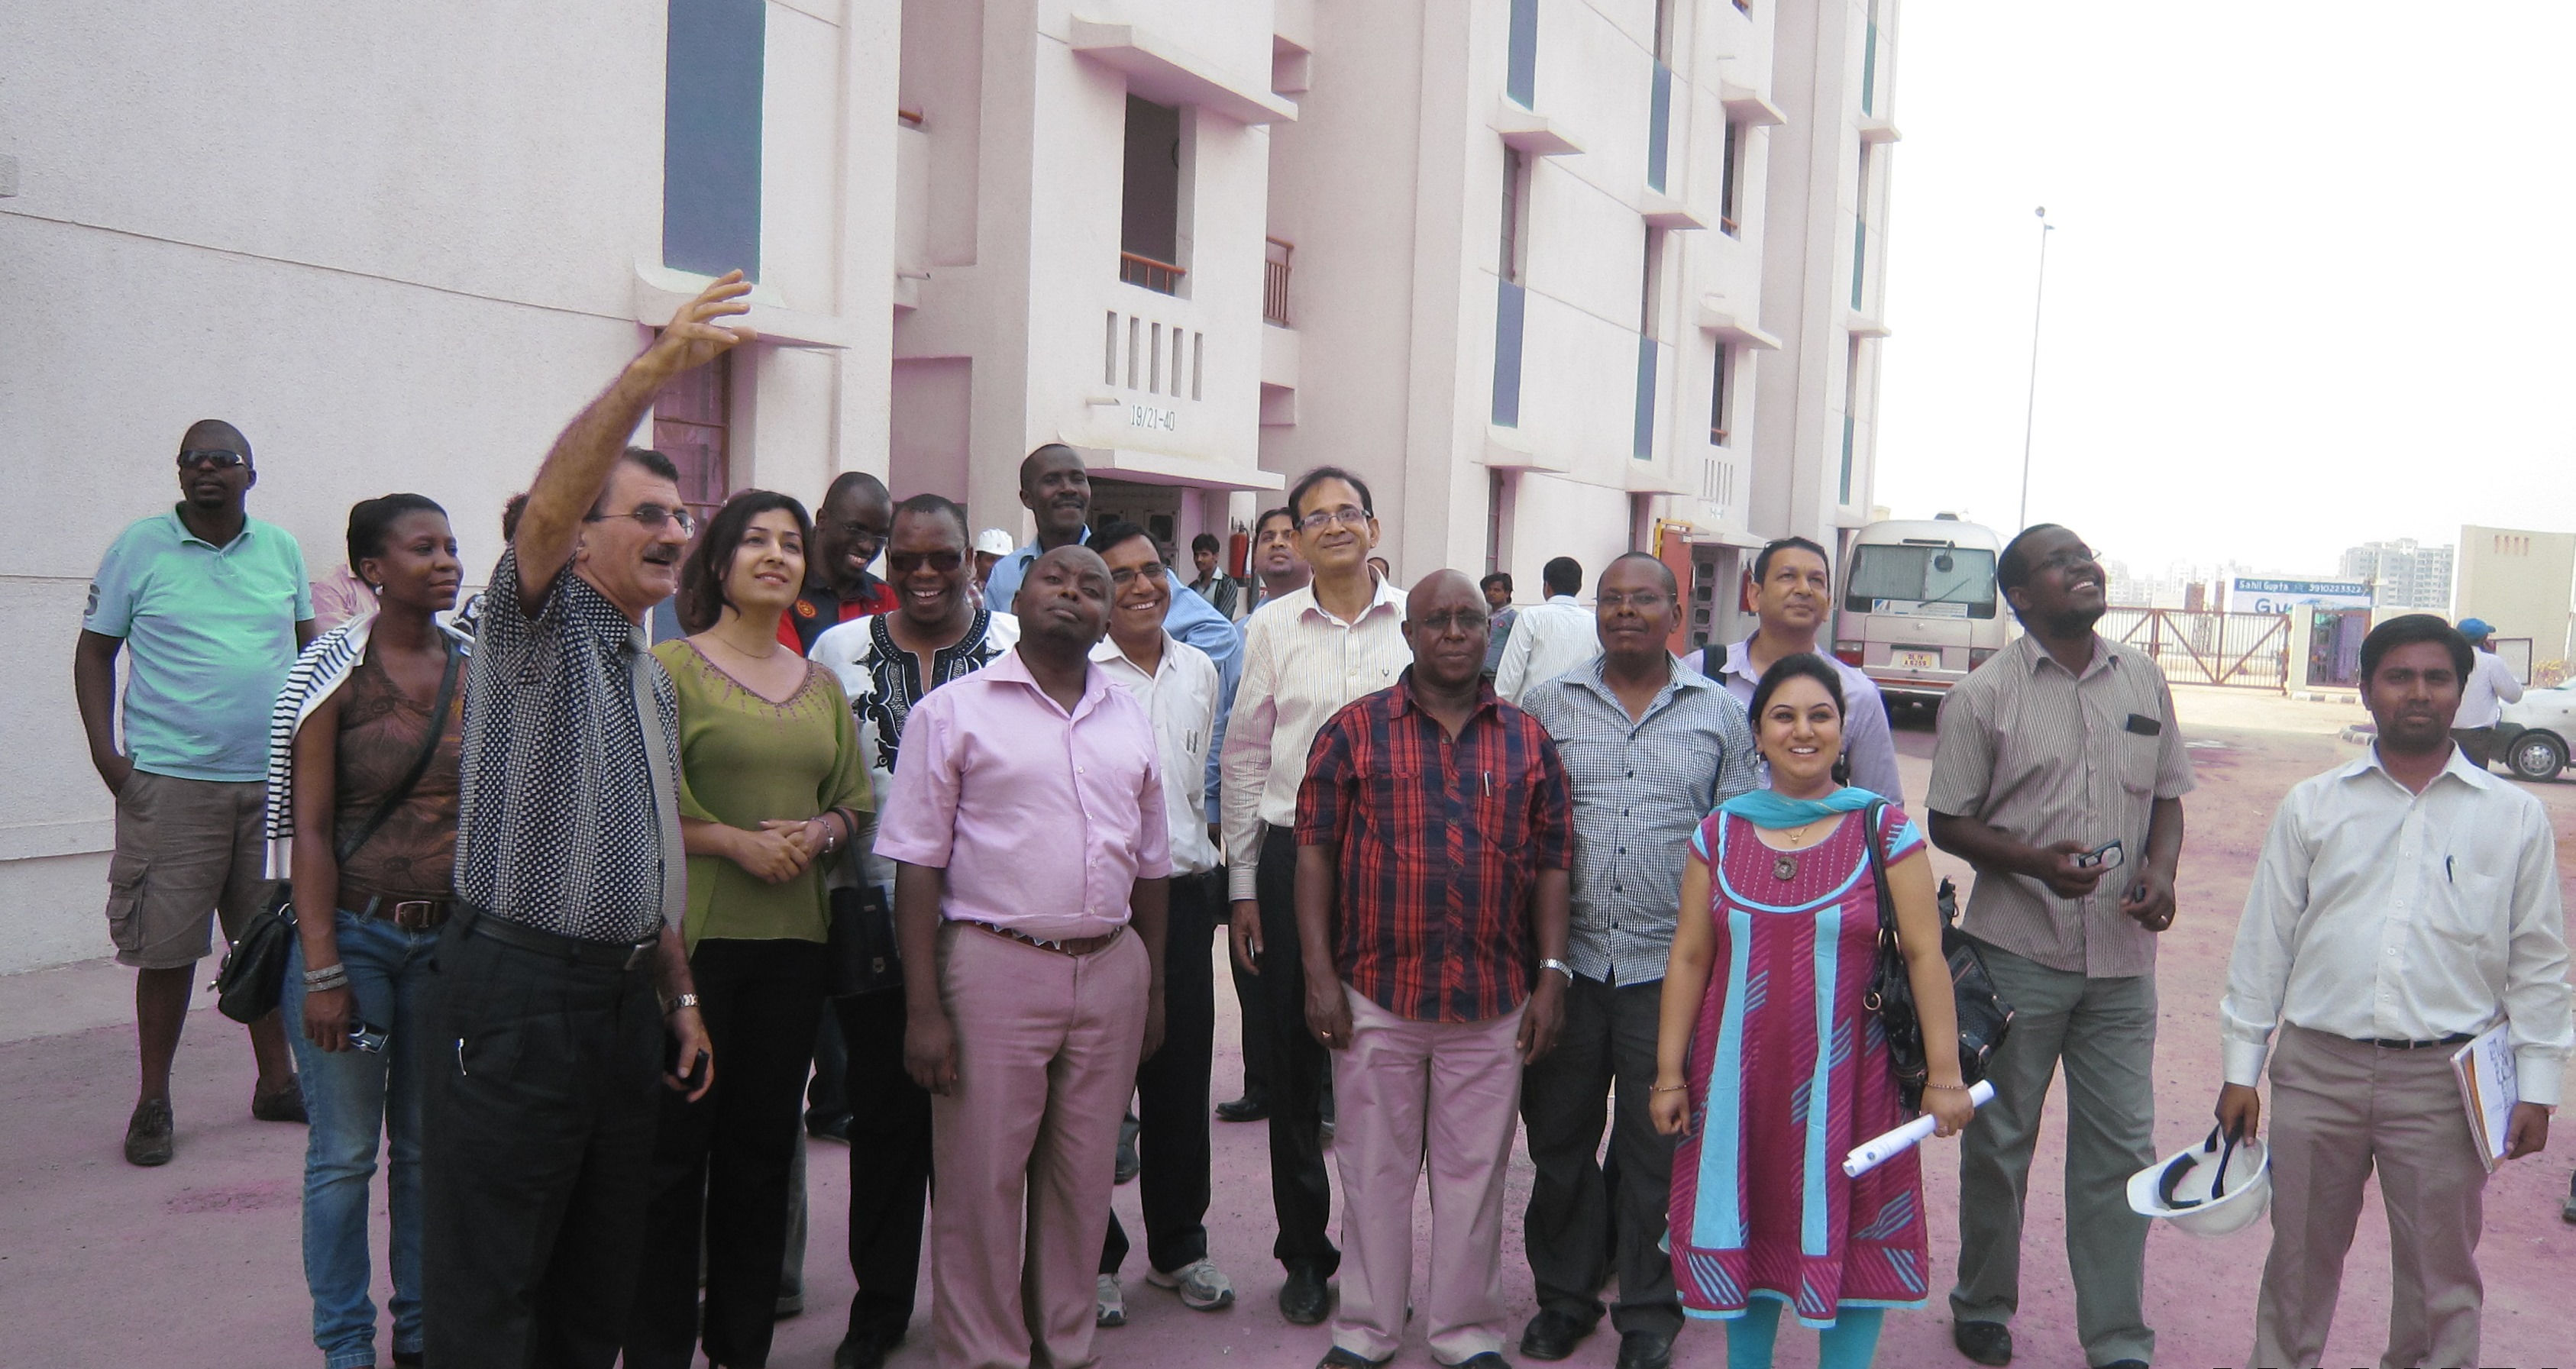 Participants of a workshop during field visit to Delhi Development Authority in India.